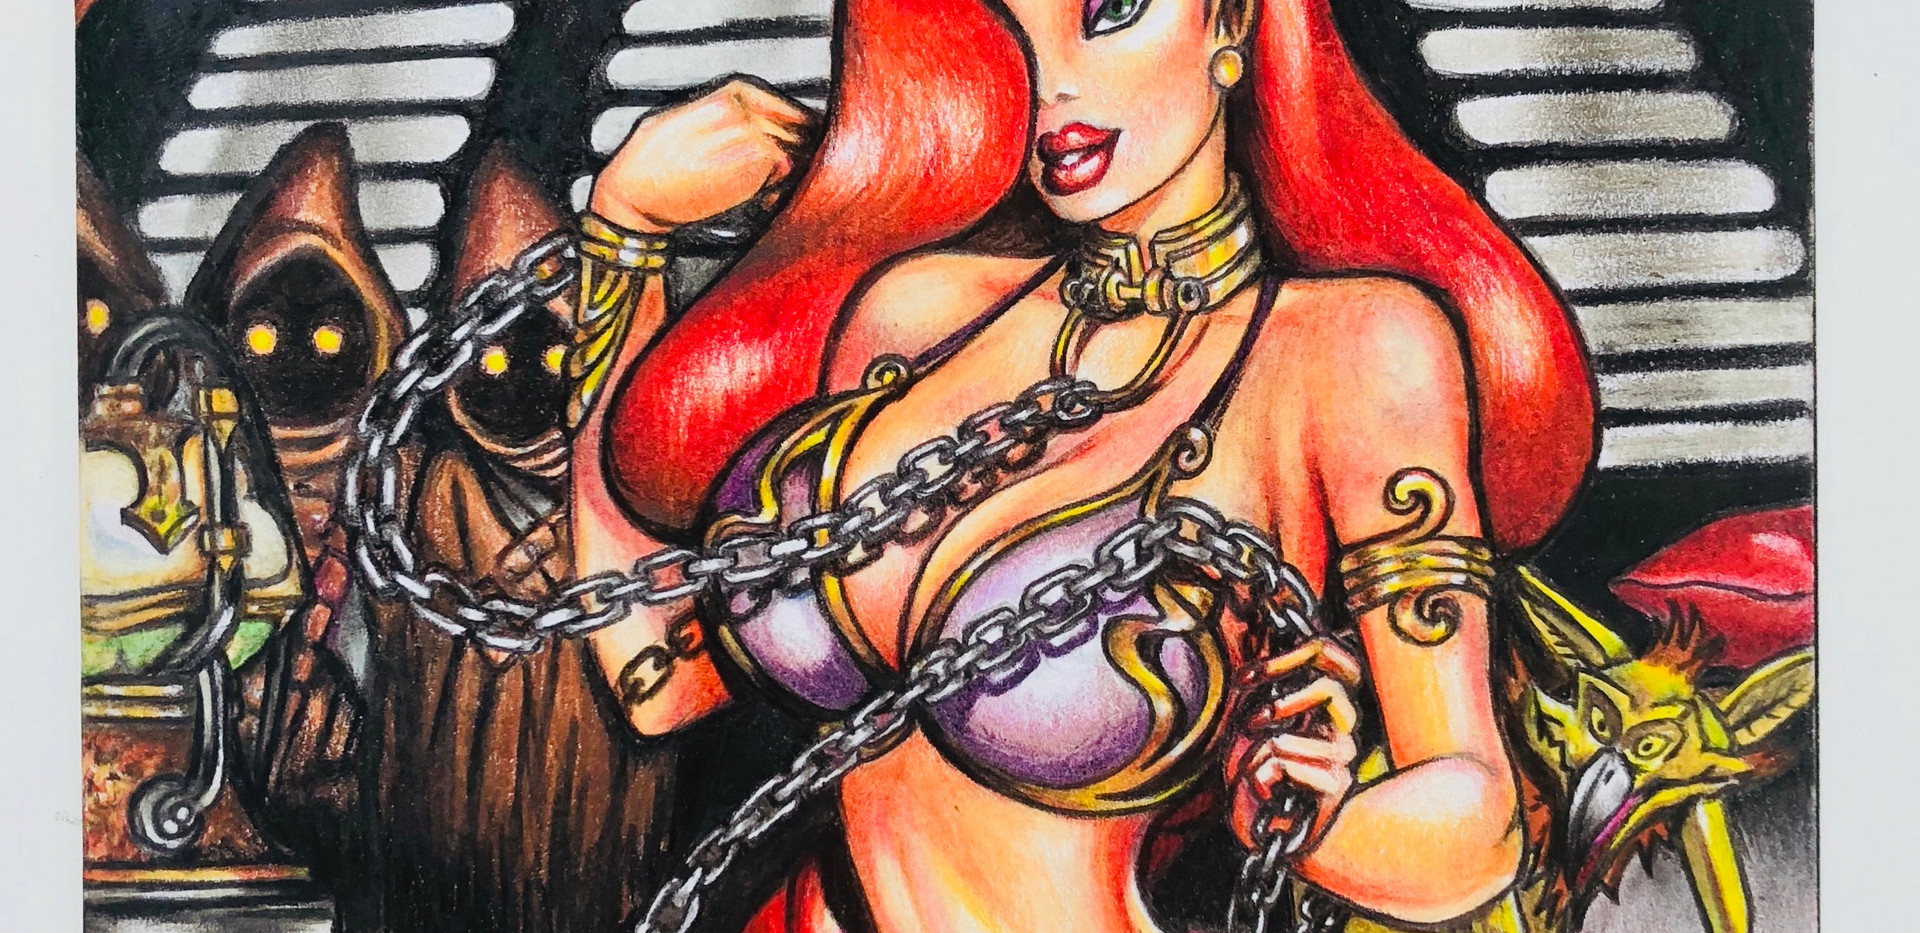 Jessica Rabbit as Princess Leia Comic Cover